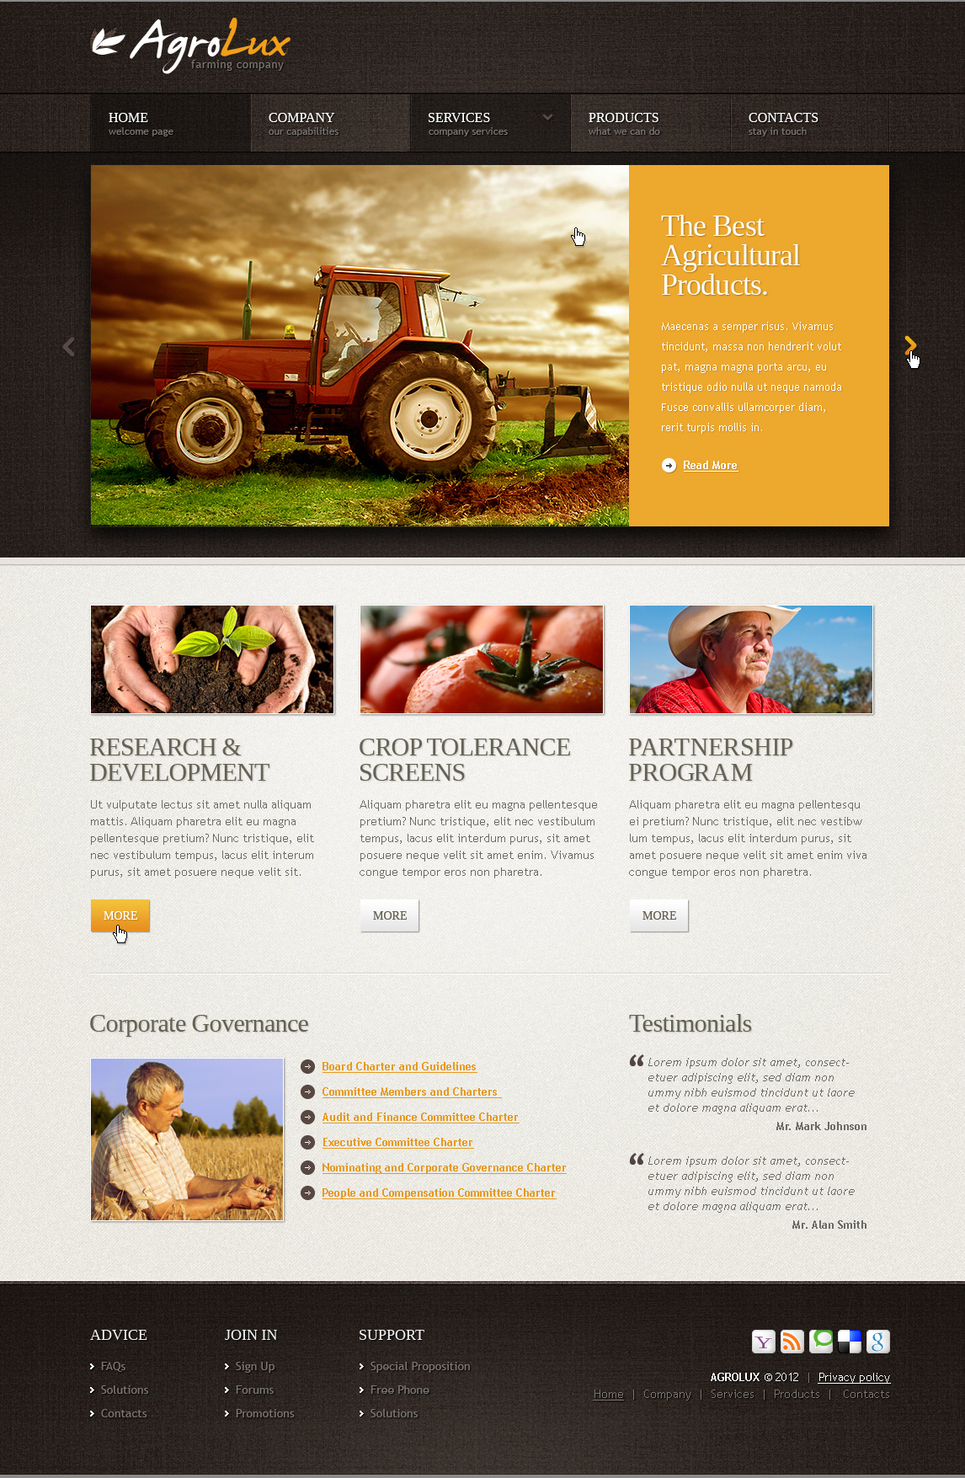 Agriculture Web Template for Farming Companies - image